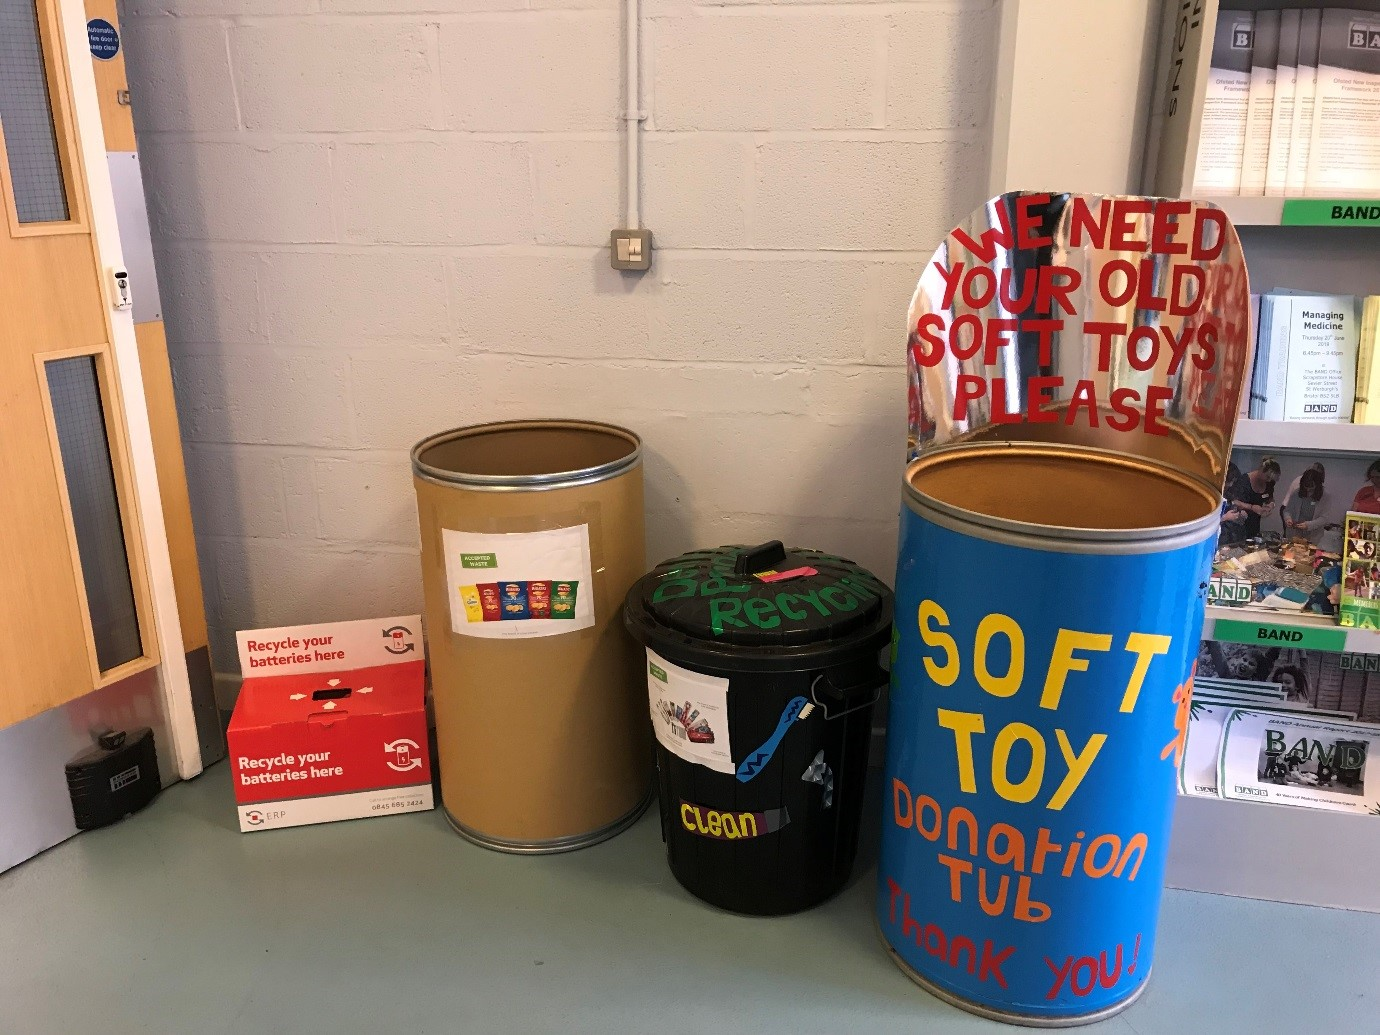 The recycling area at Scrapstore House, from left to right: batteries, crisp packets, oral hygiene waste, and soft toys.